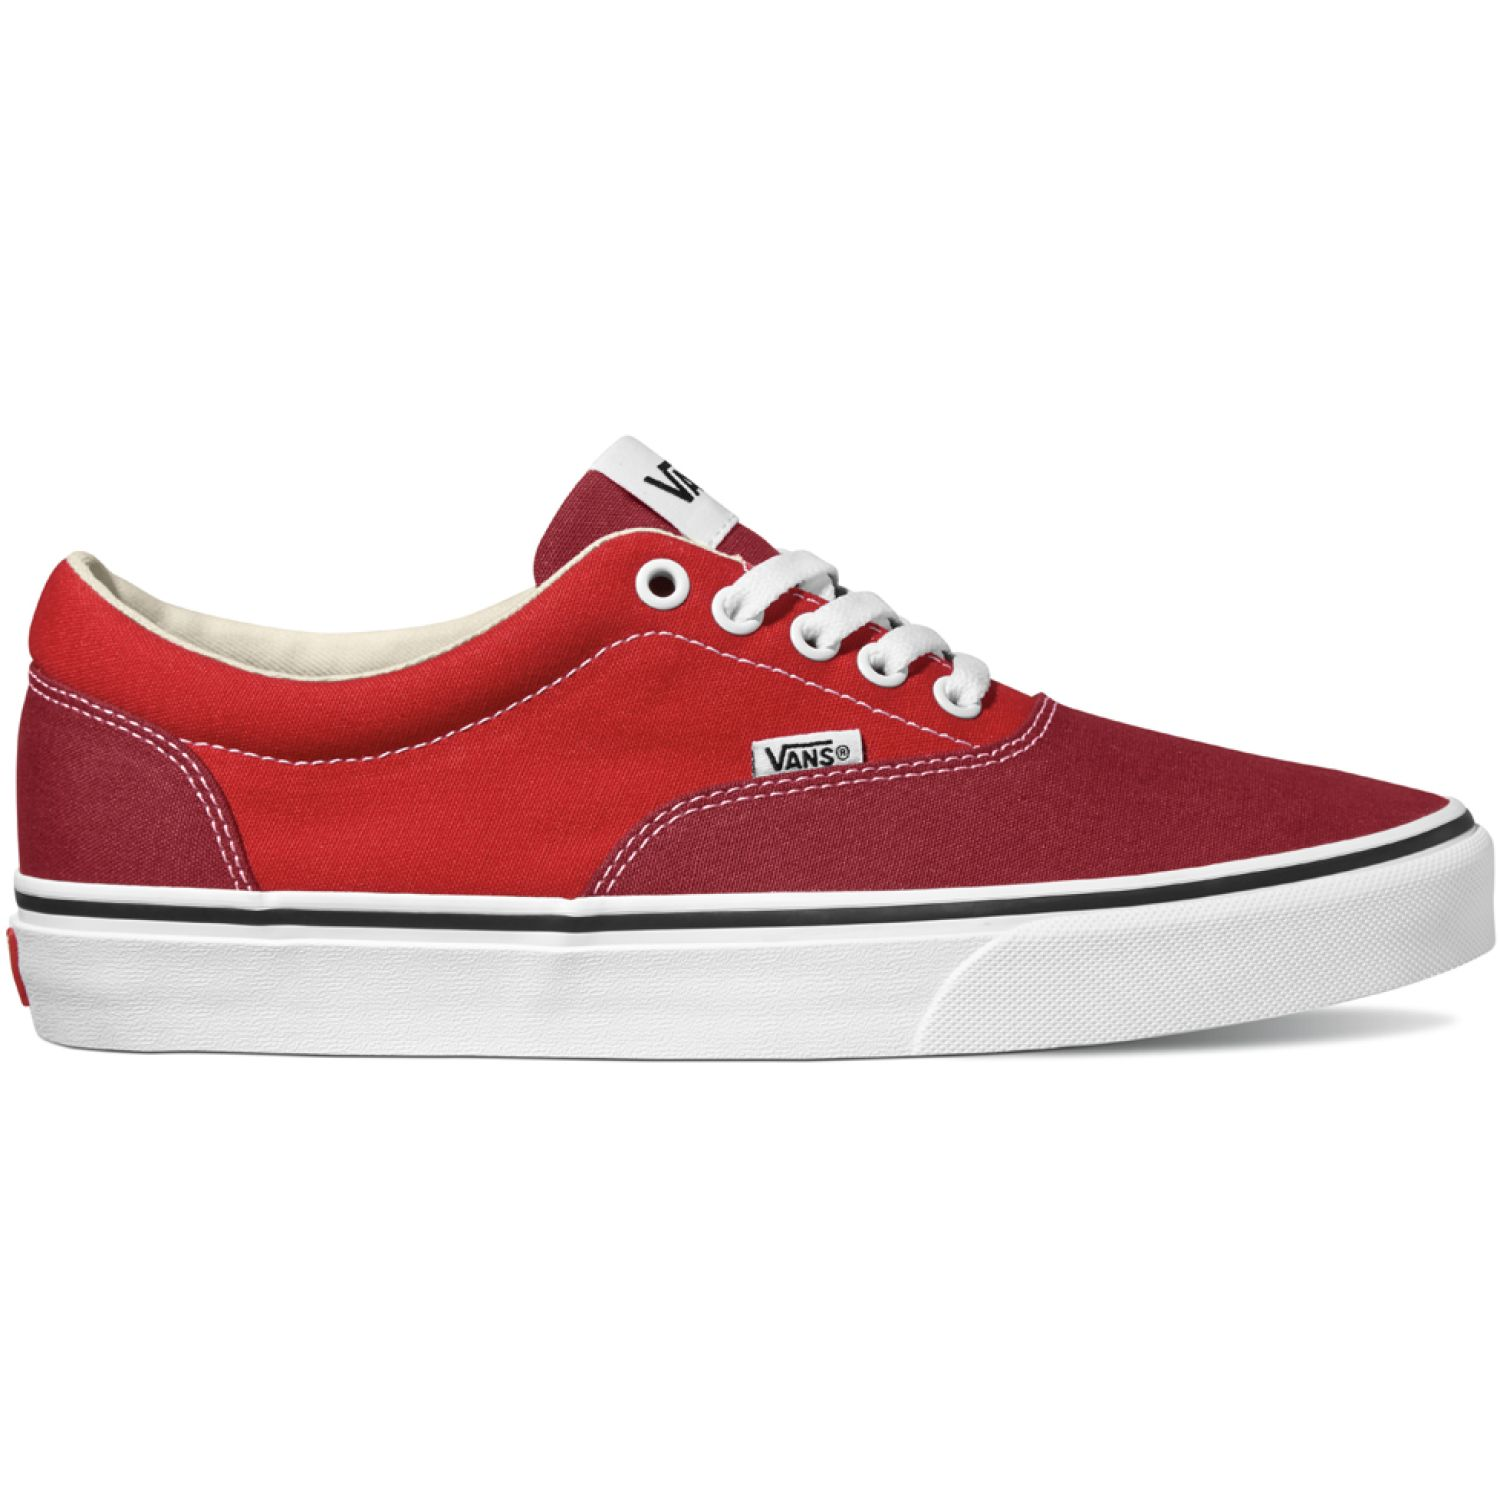 Vans doheny Rojo / blanco Walking